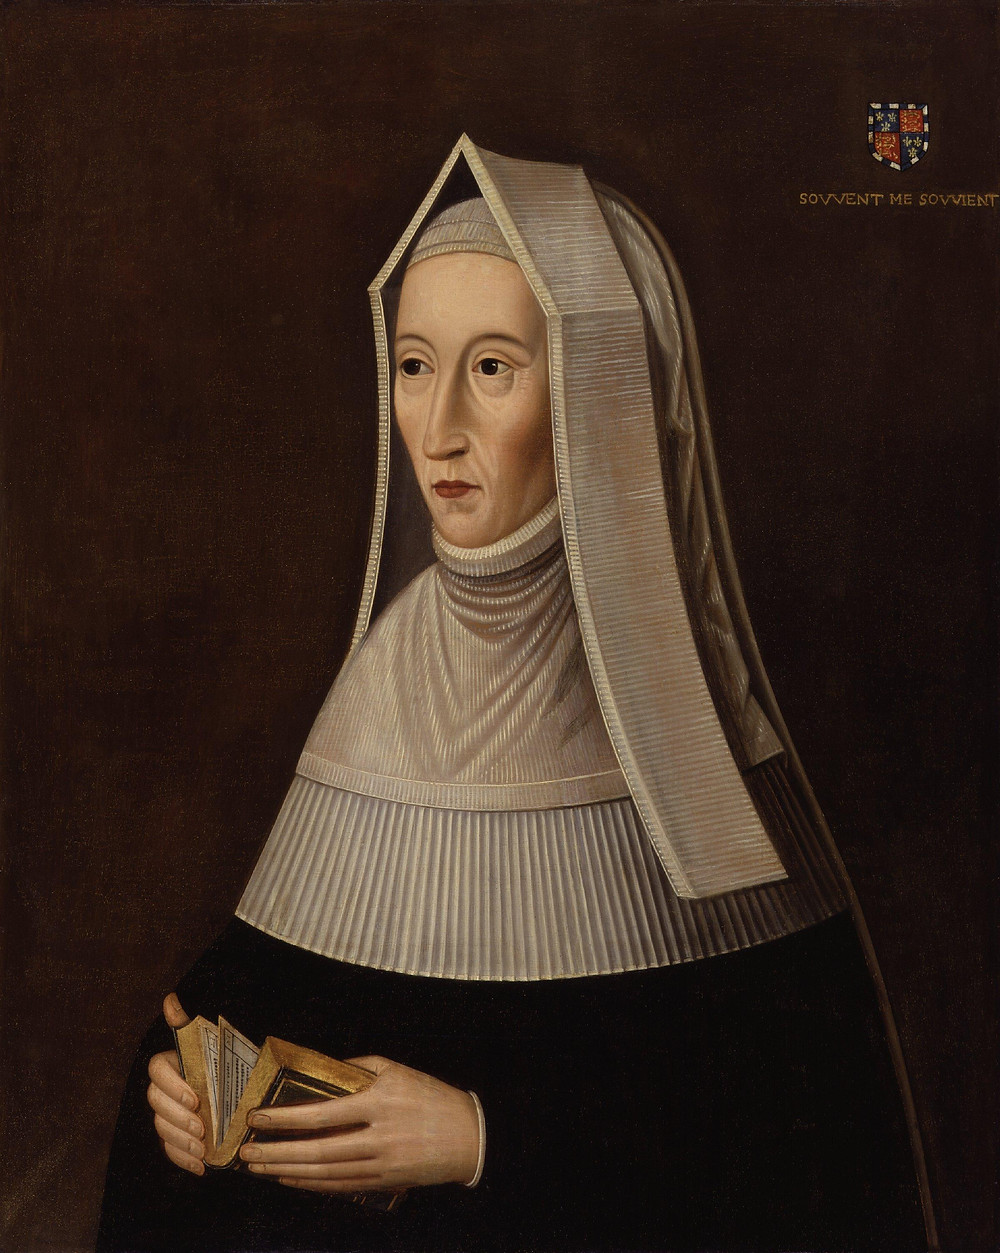 Lady Margaret Beaufort, mother of the first Tudor king, Henry VII, & grandmother of Henry VIII